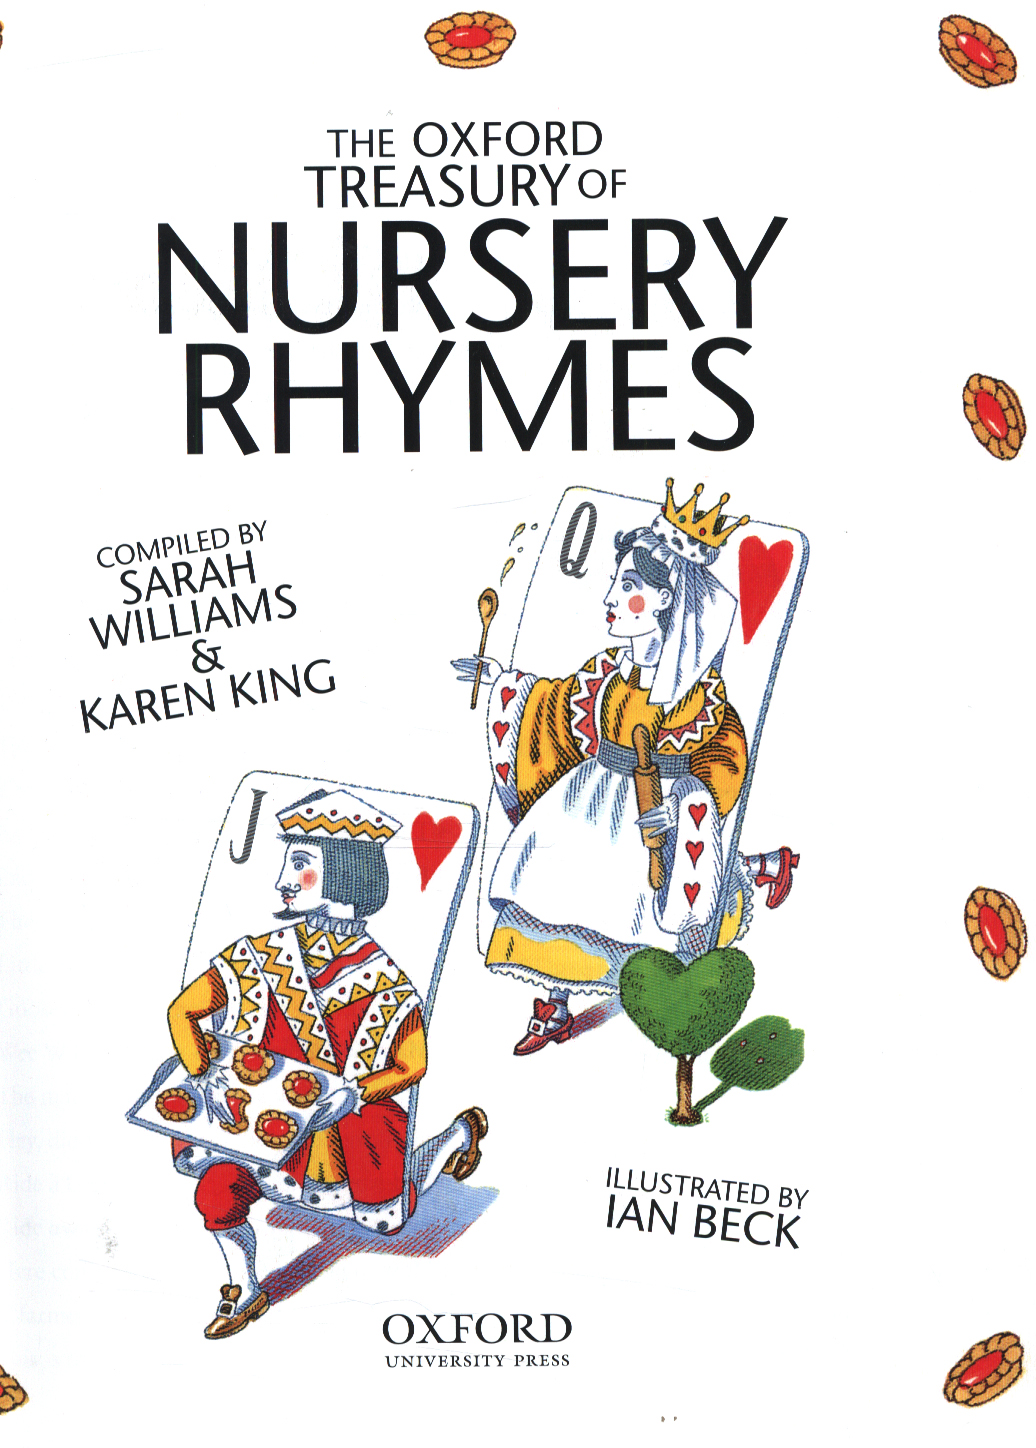 The Oxford dictionary of nursery rhymes;